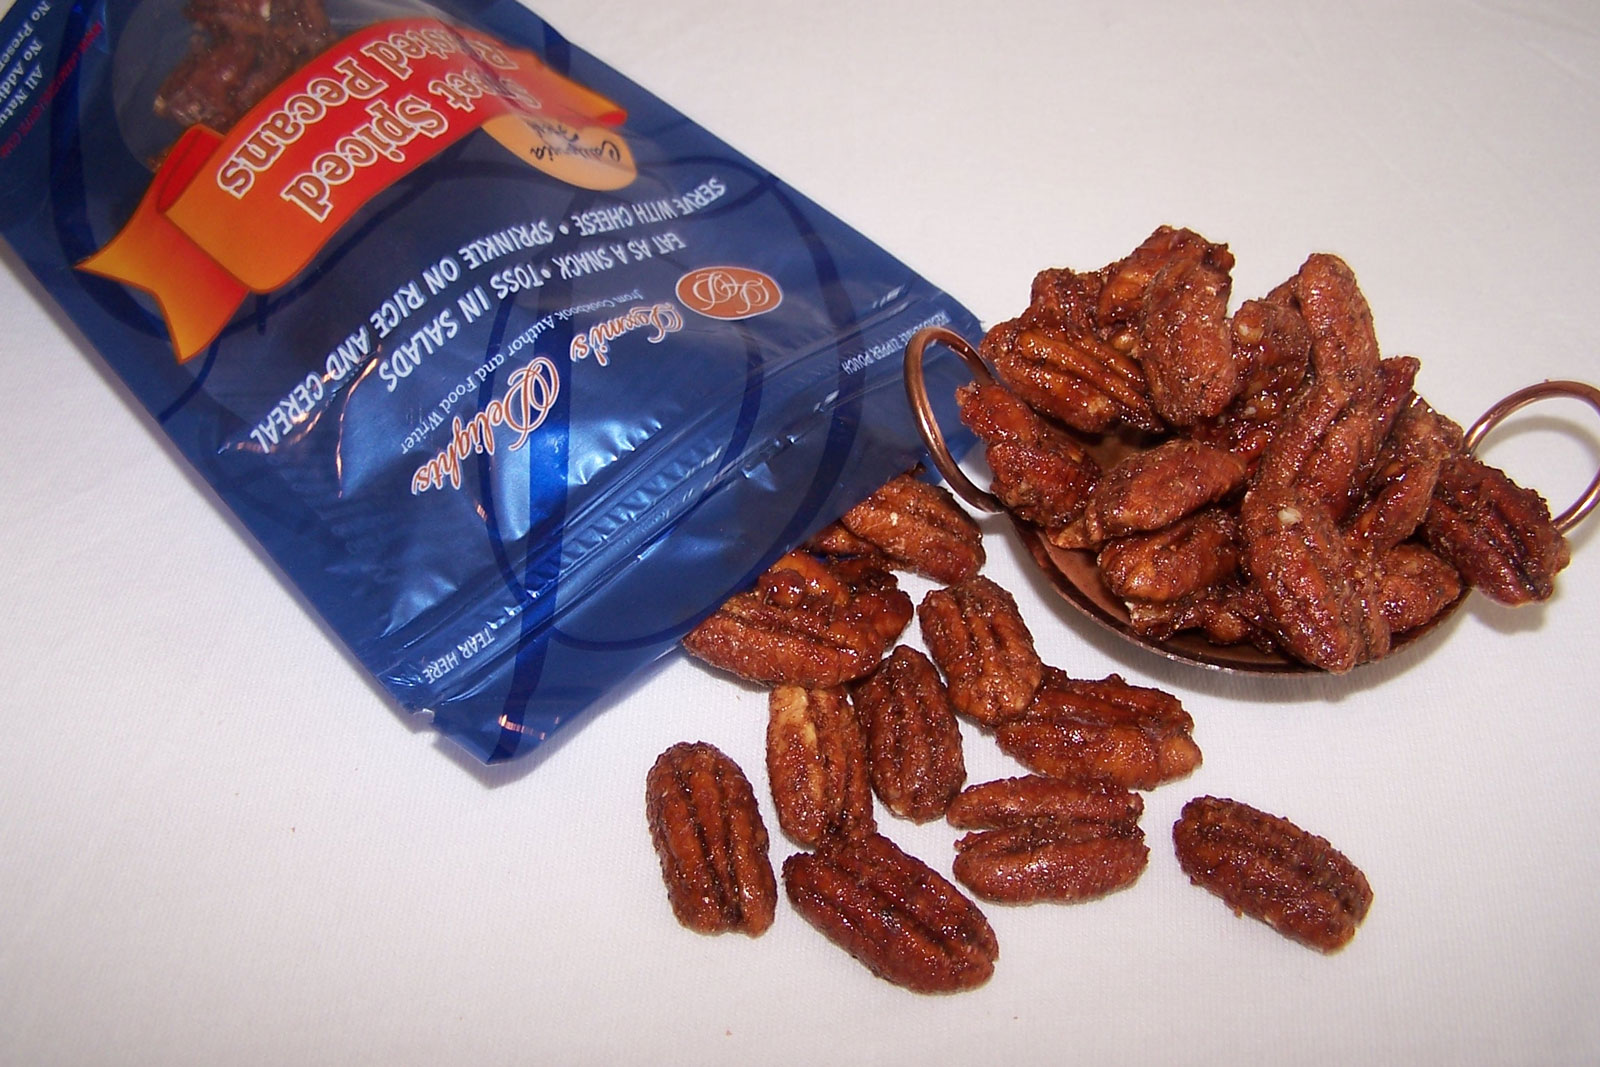 Pecan package, alternate view